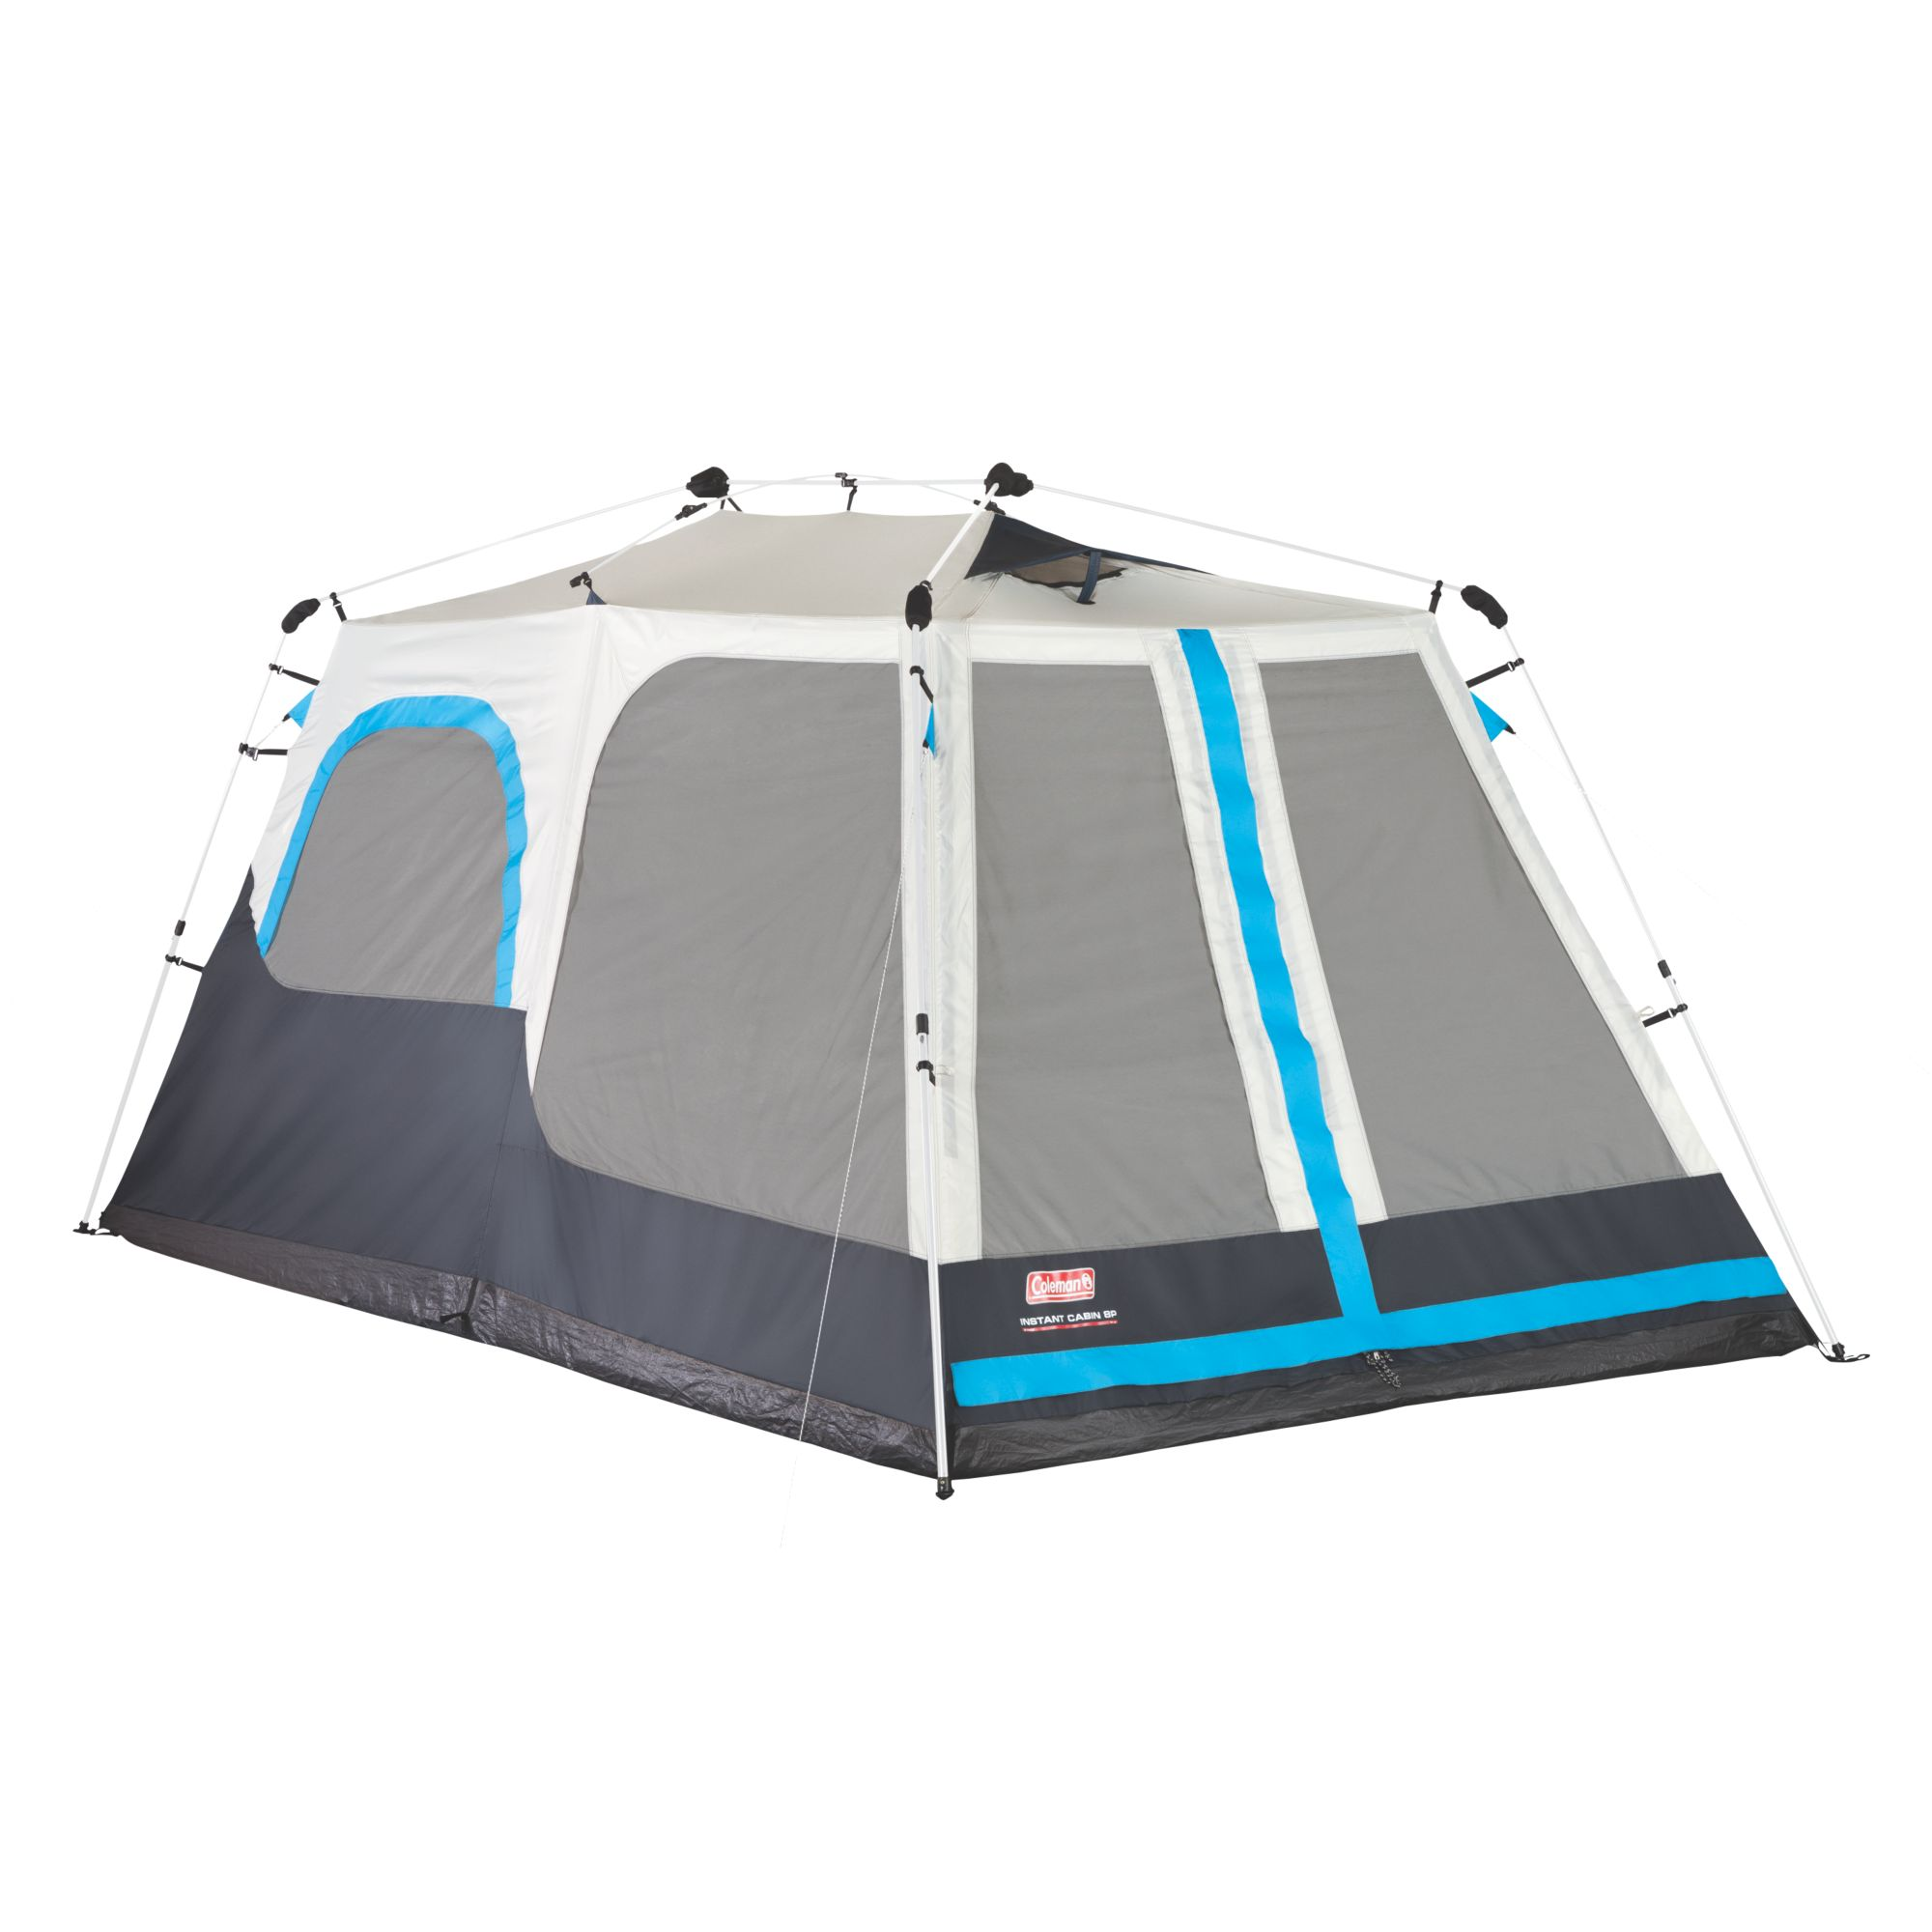 Instant tents for camping coleman tents coleman 8 person instant cabin with mini fly sciox Image collections